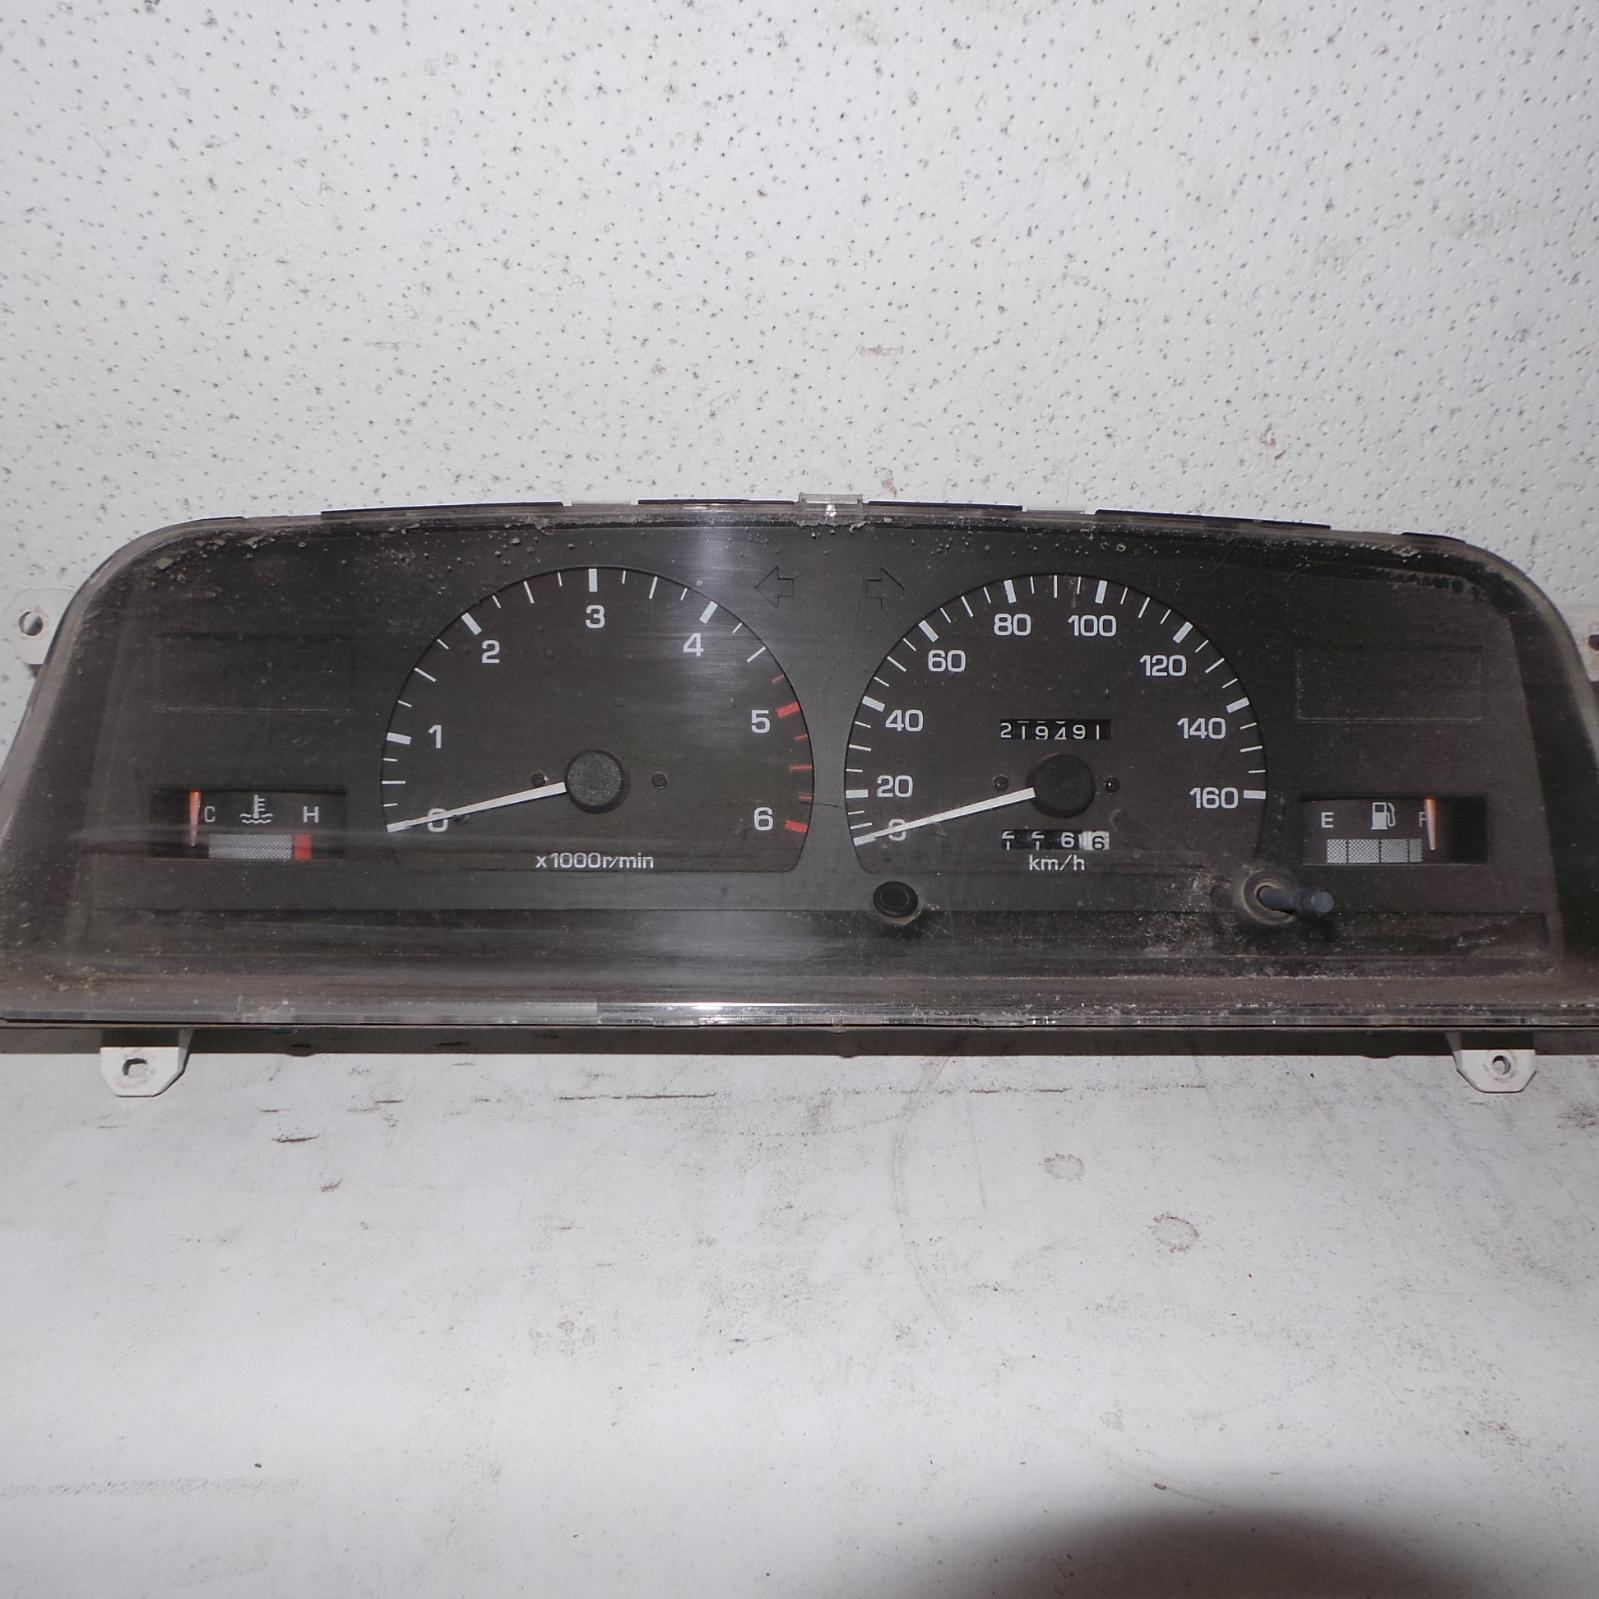 TOYOTA HILUX, Instrument Cluster, CLUSTER STANDARD, DIESEL, CABLE TYPE SPEEDO, 10/88-09/97